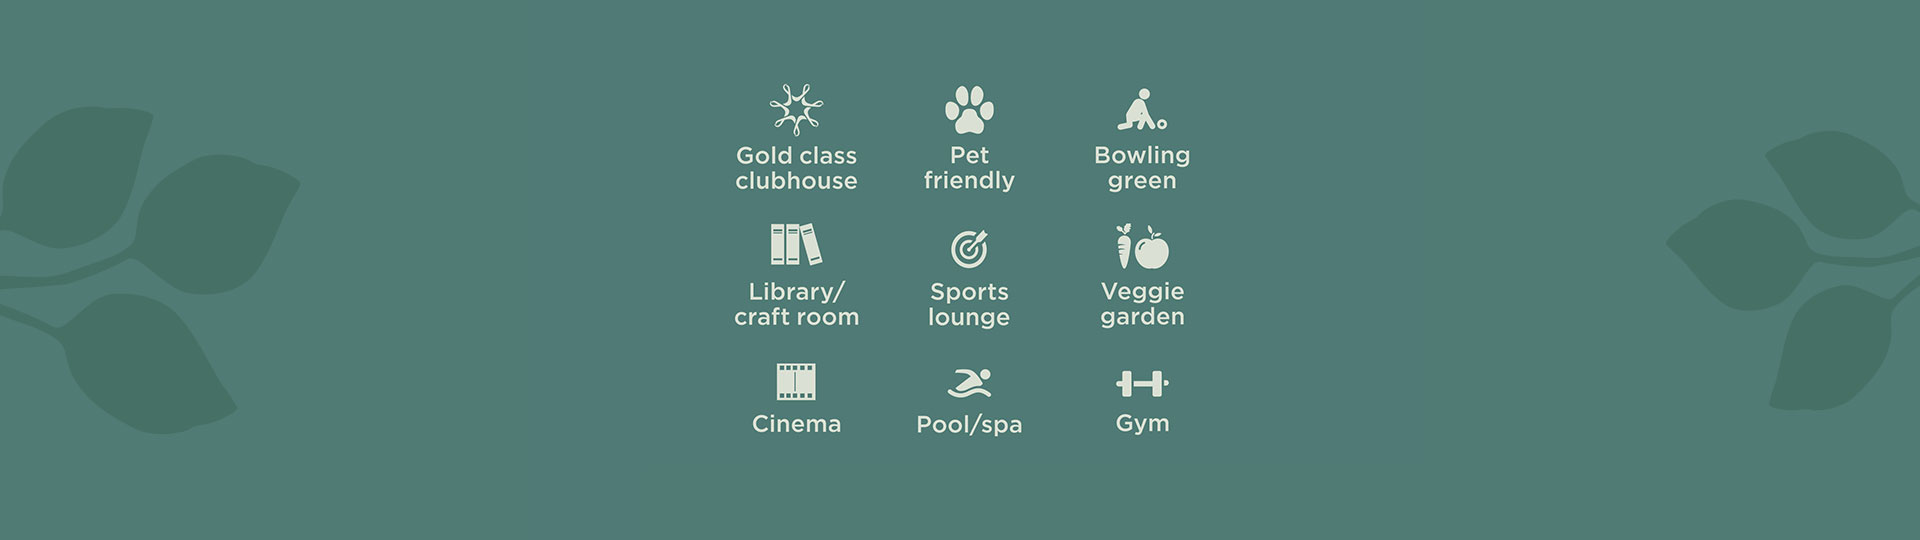 Freshwater community facilities including a bowling green, gym, pool and cinema.